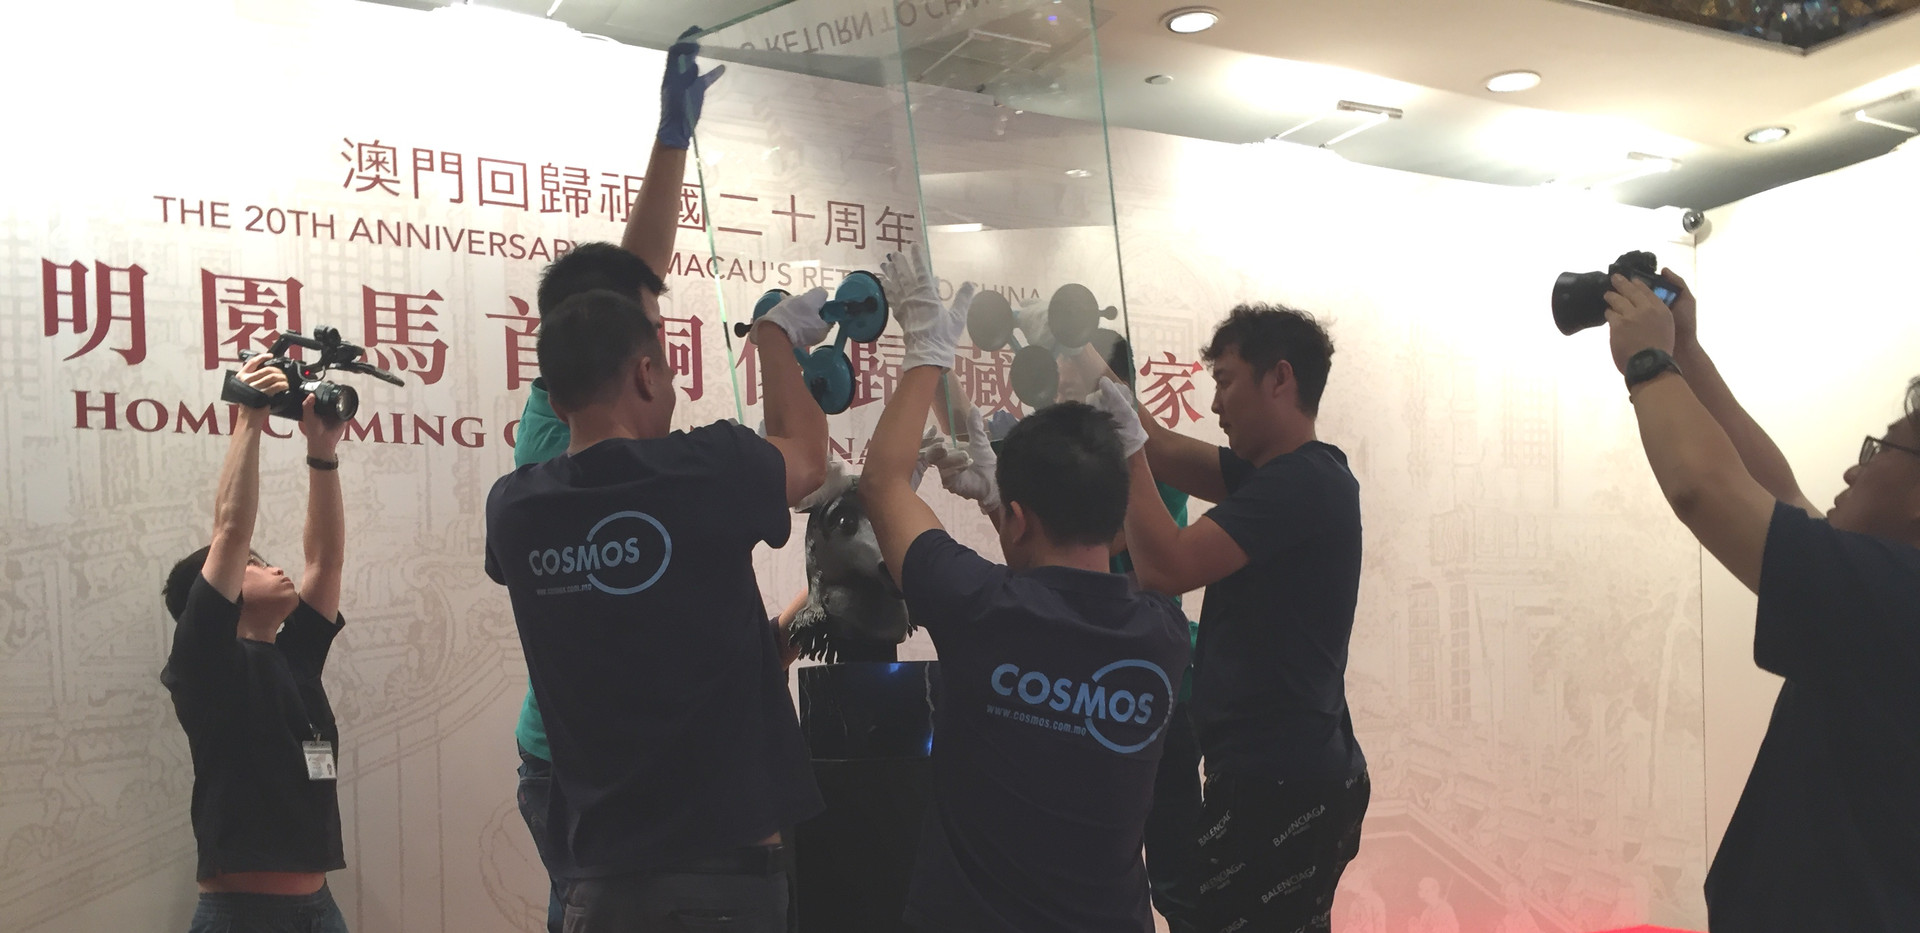 Moving of the chinese national treasure - bronze horse head